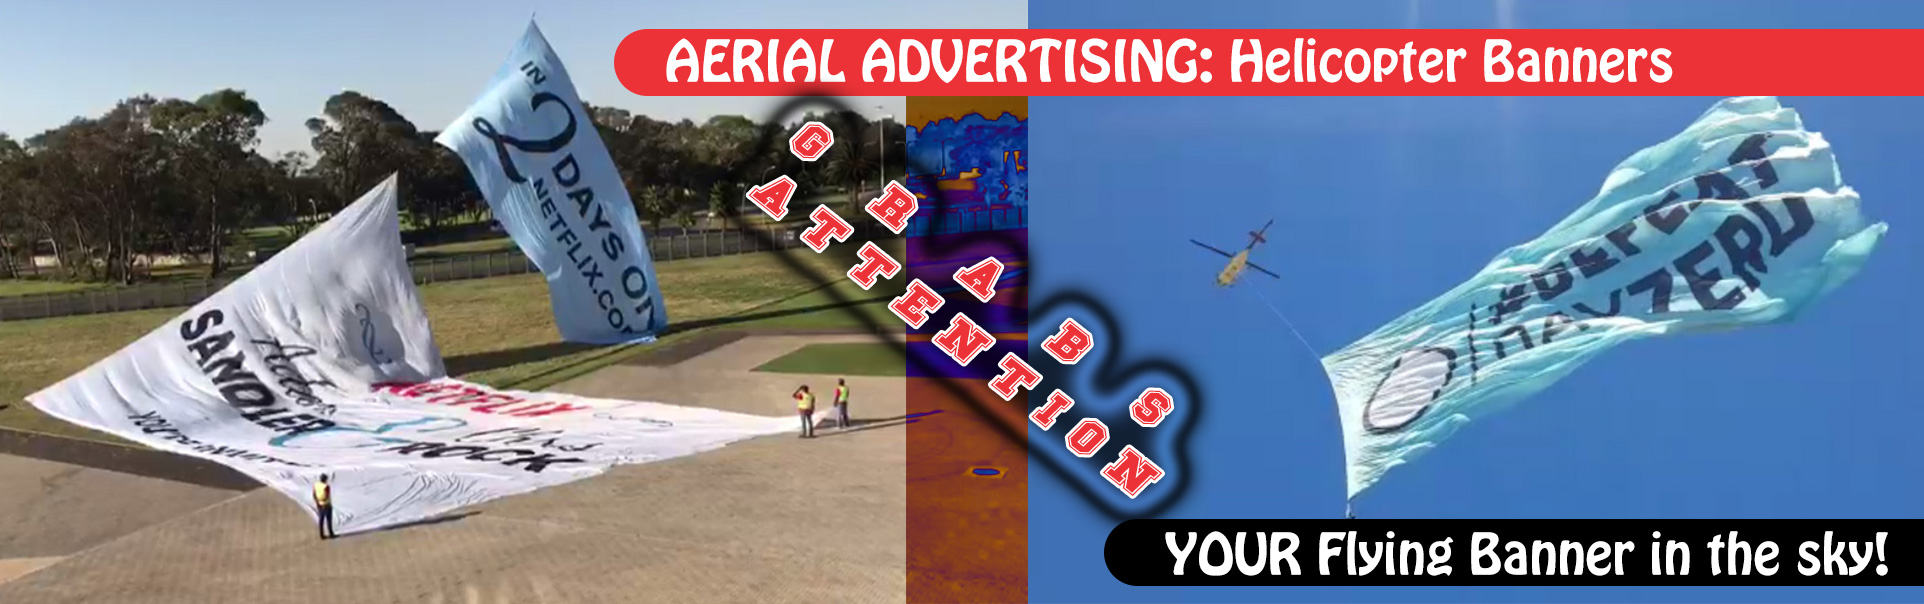 Print Impact | Aerial Advertising - Helicopter Banner in the sky